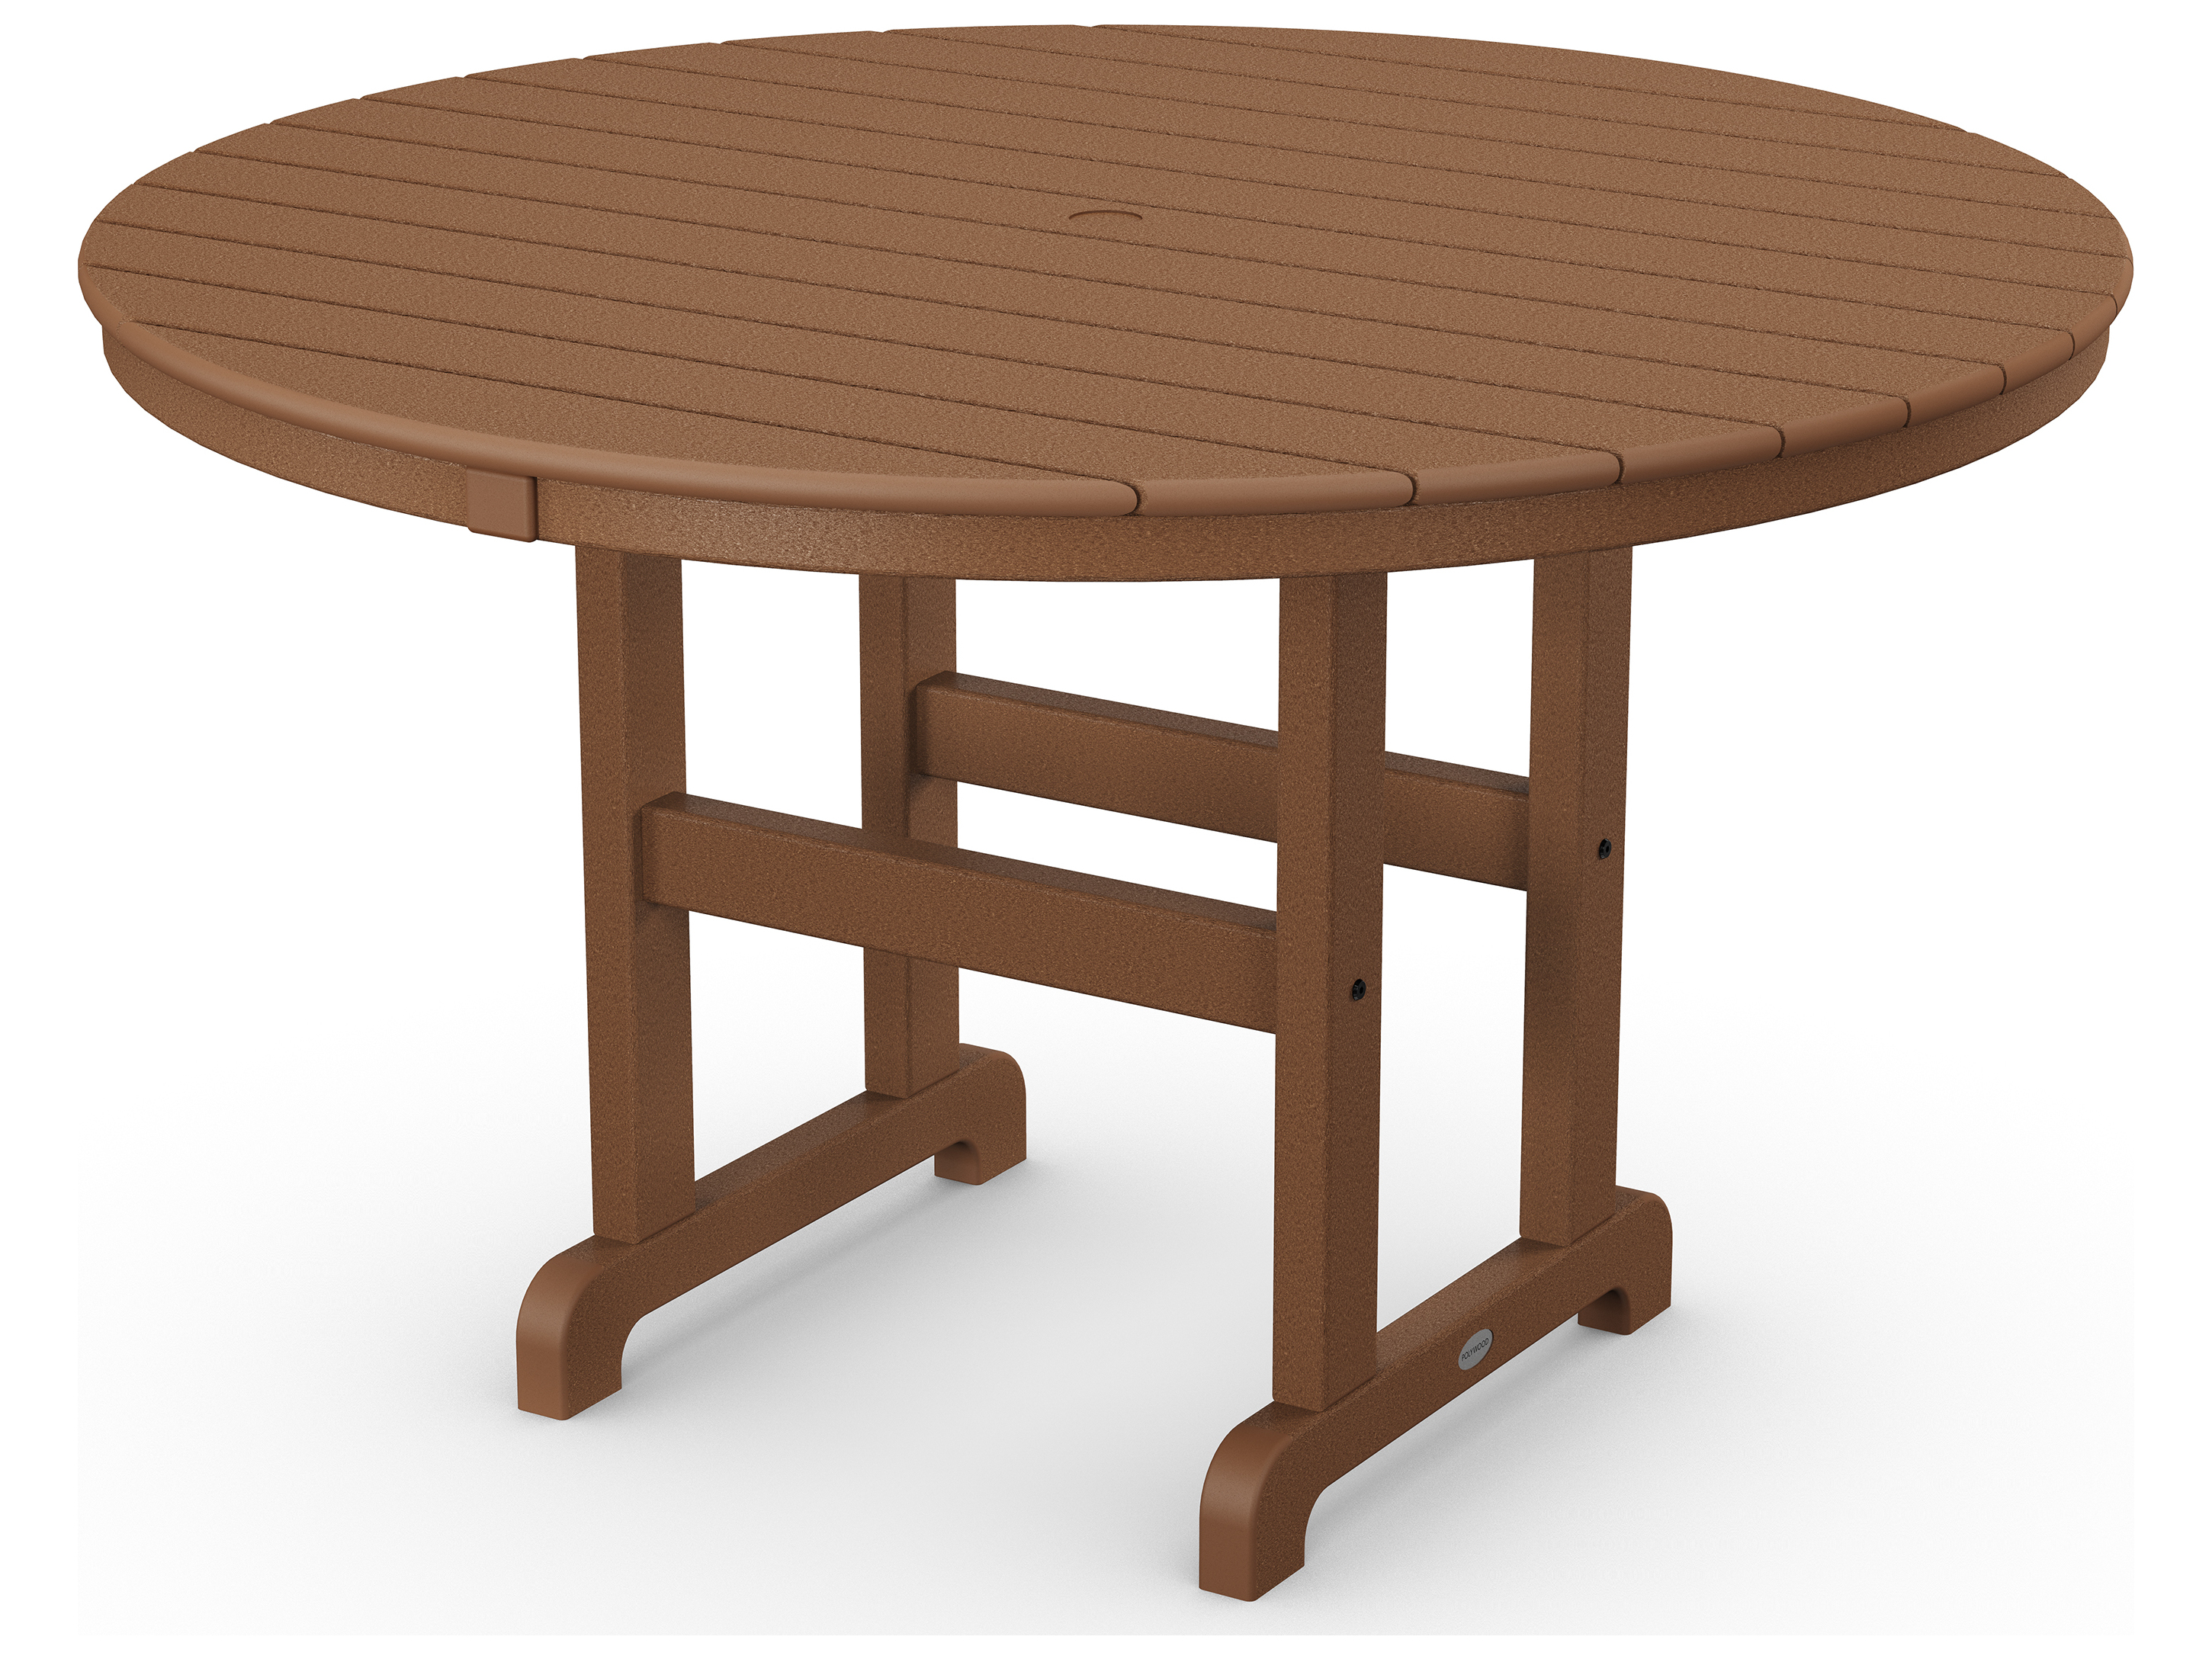 Polywood 174 La Casa Cafe Recycled Plastic 48 Round Dining